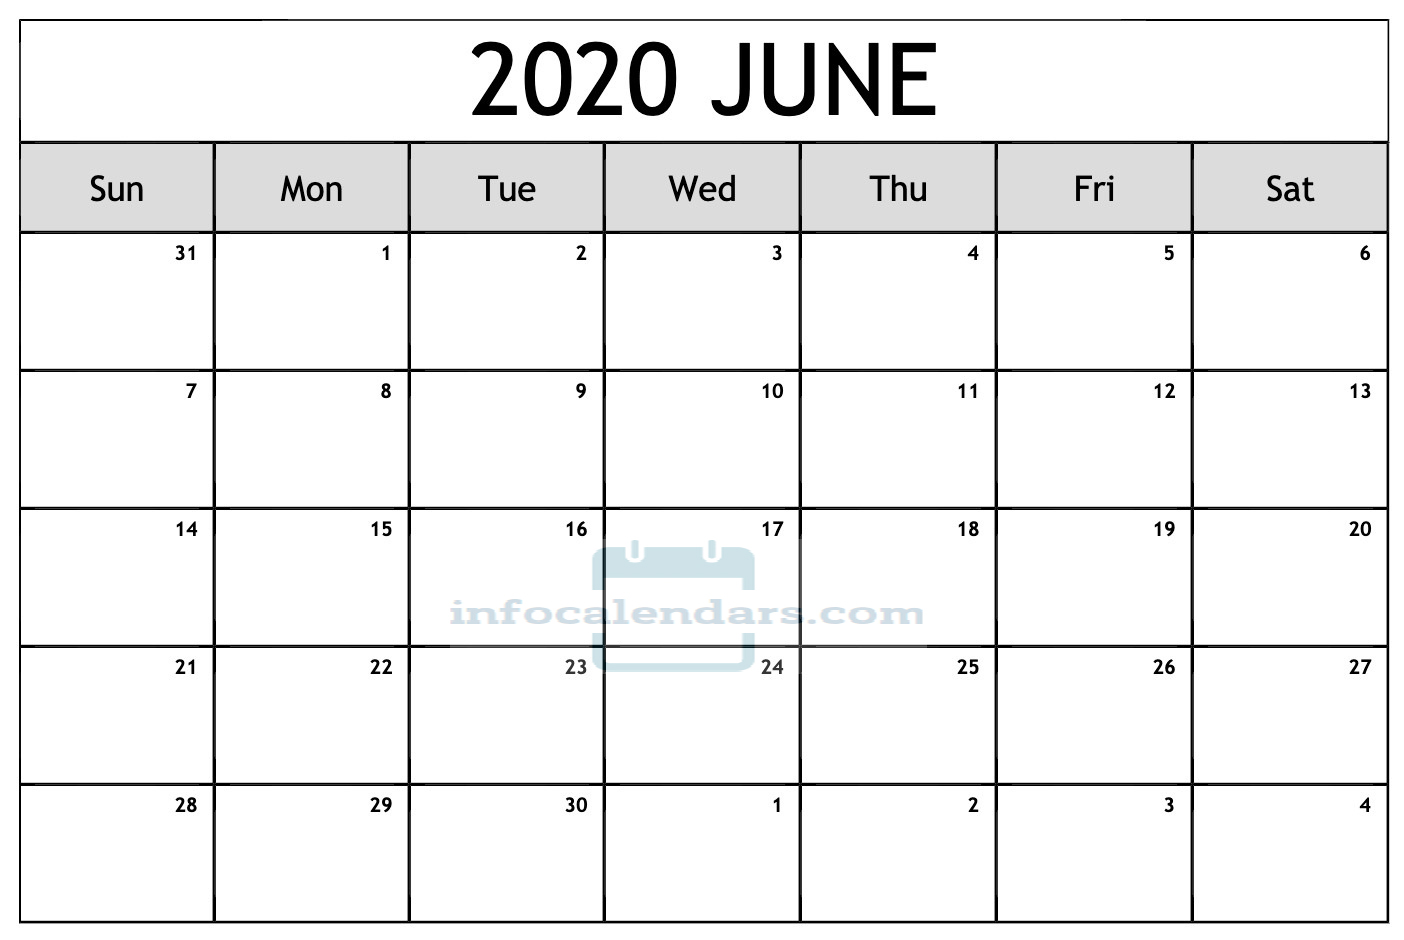 June 2020 Calendar With Holidays For School